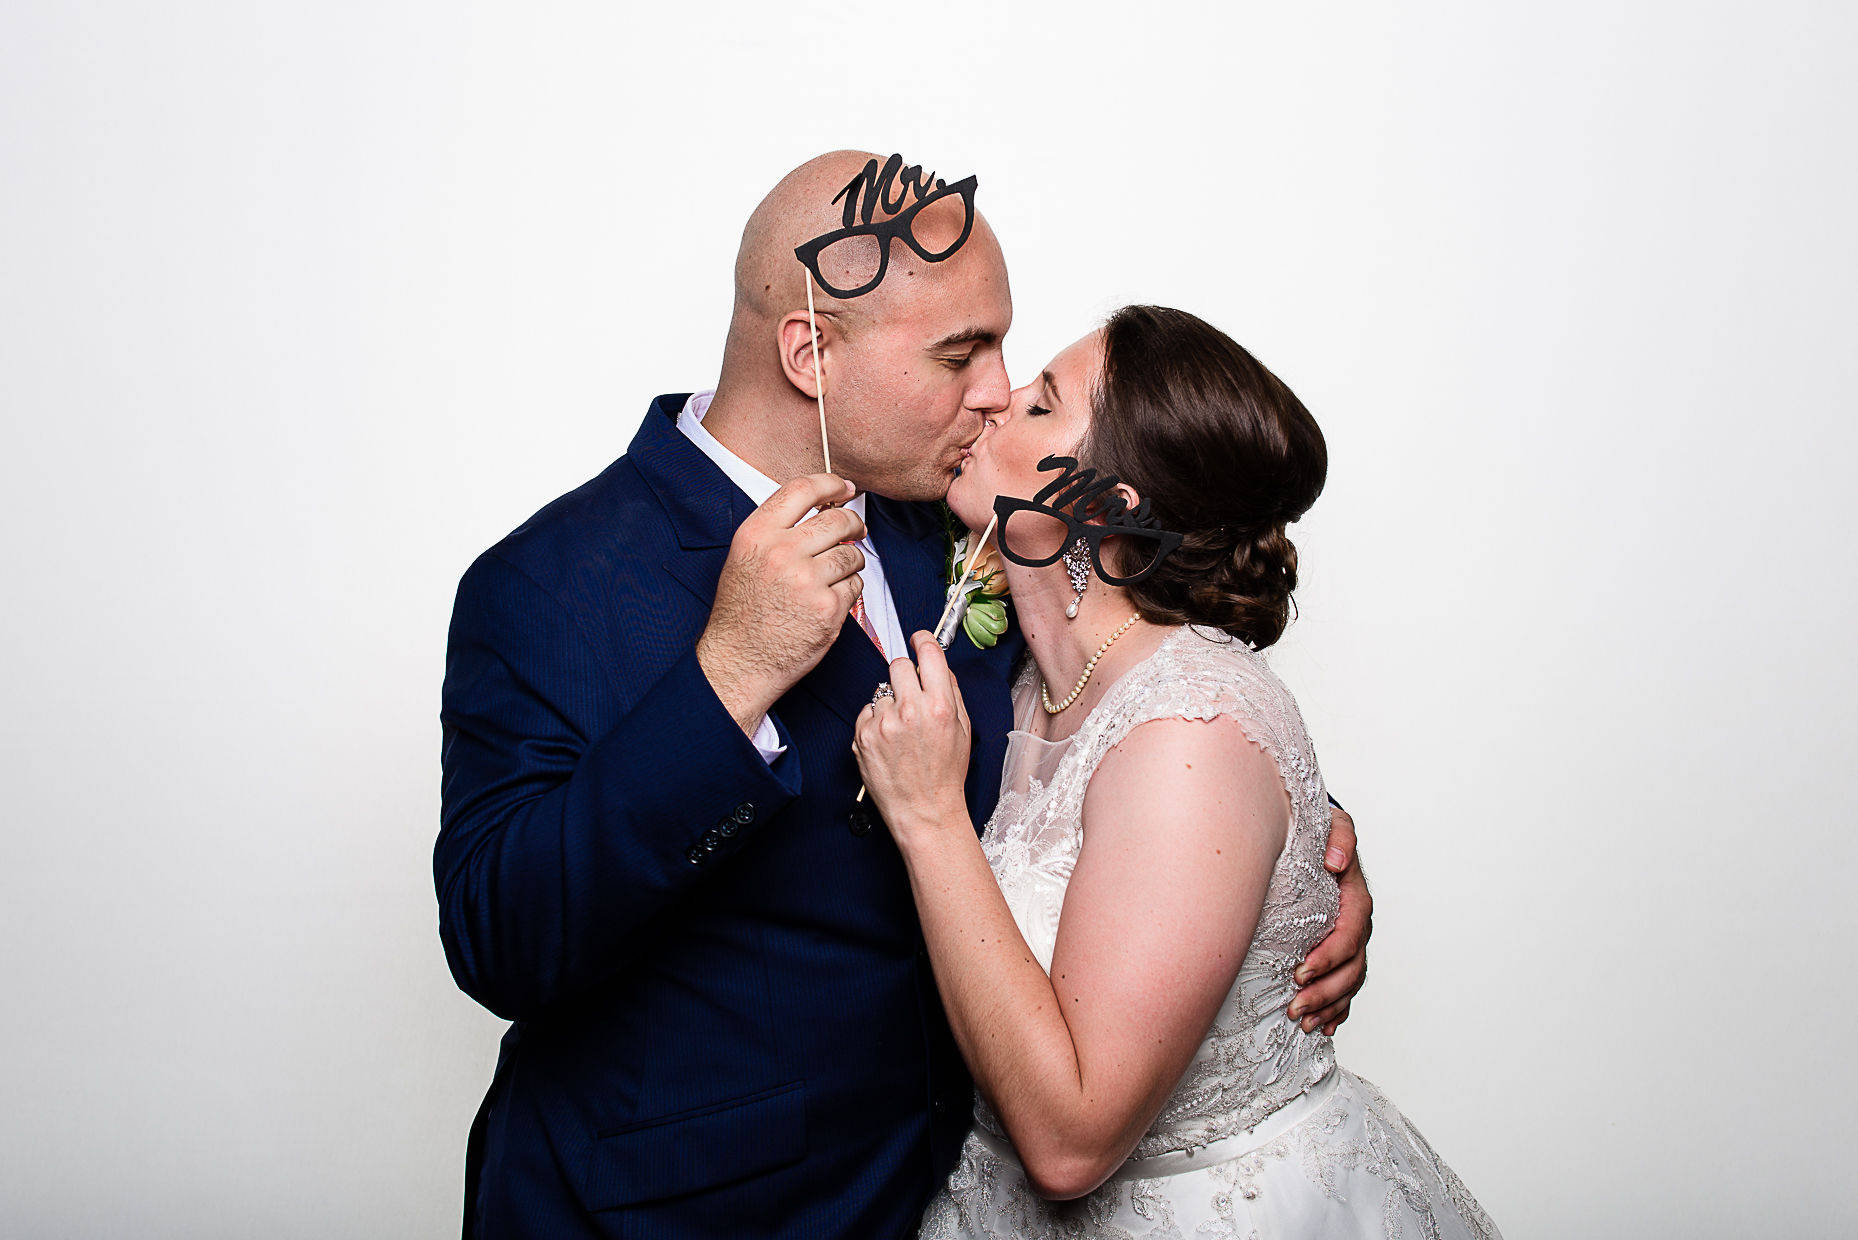 Austin-Wedding-Photographer-Photobooth-Mr-Mrs-Bride-Groom